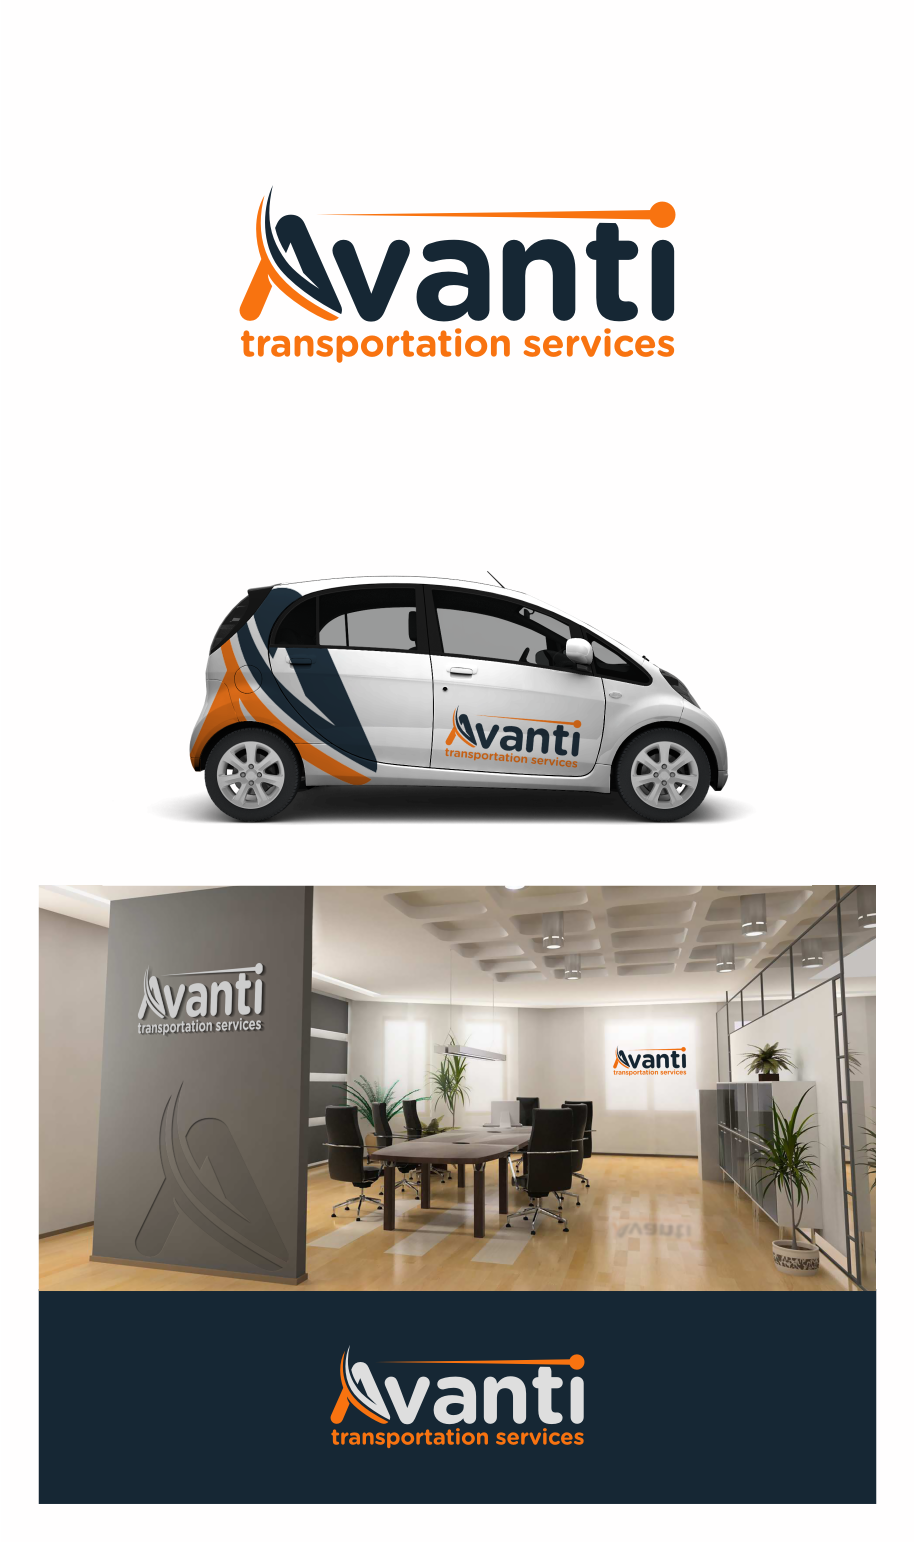 Logo and car design for medical transportation business.